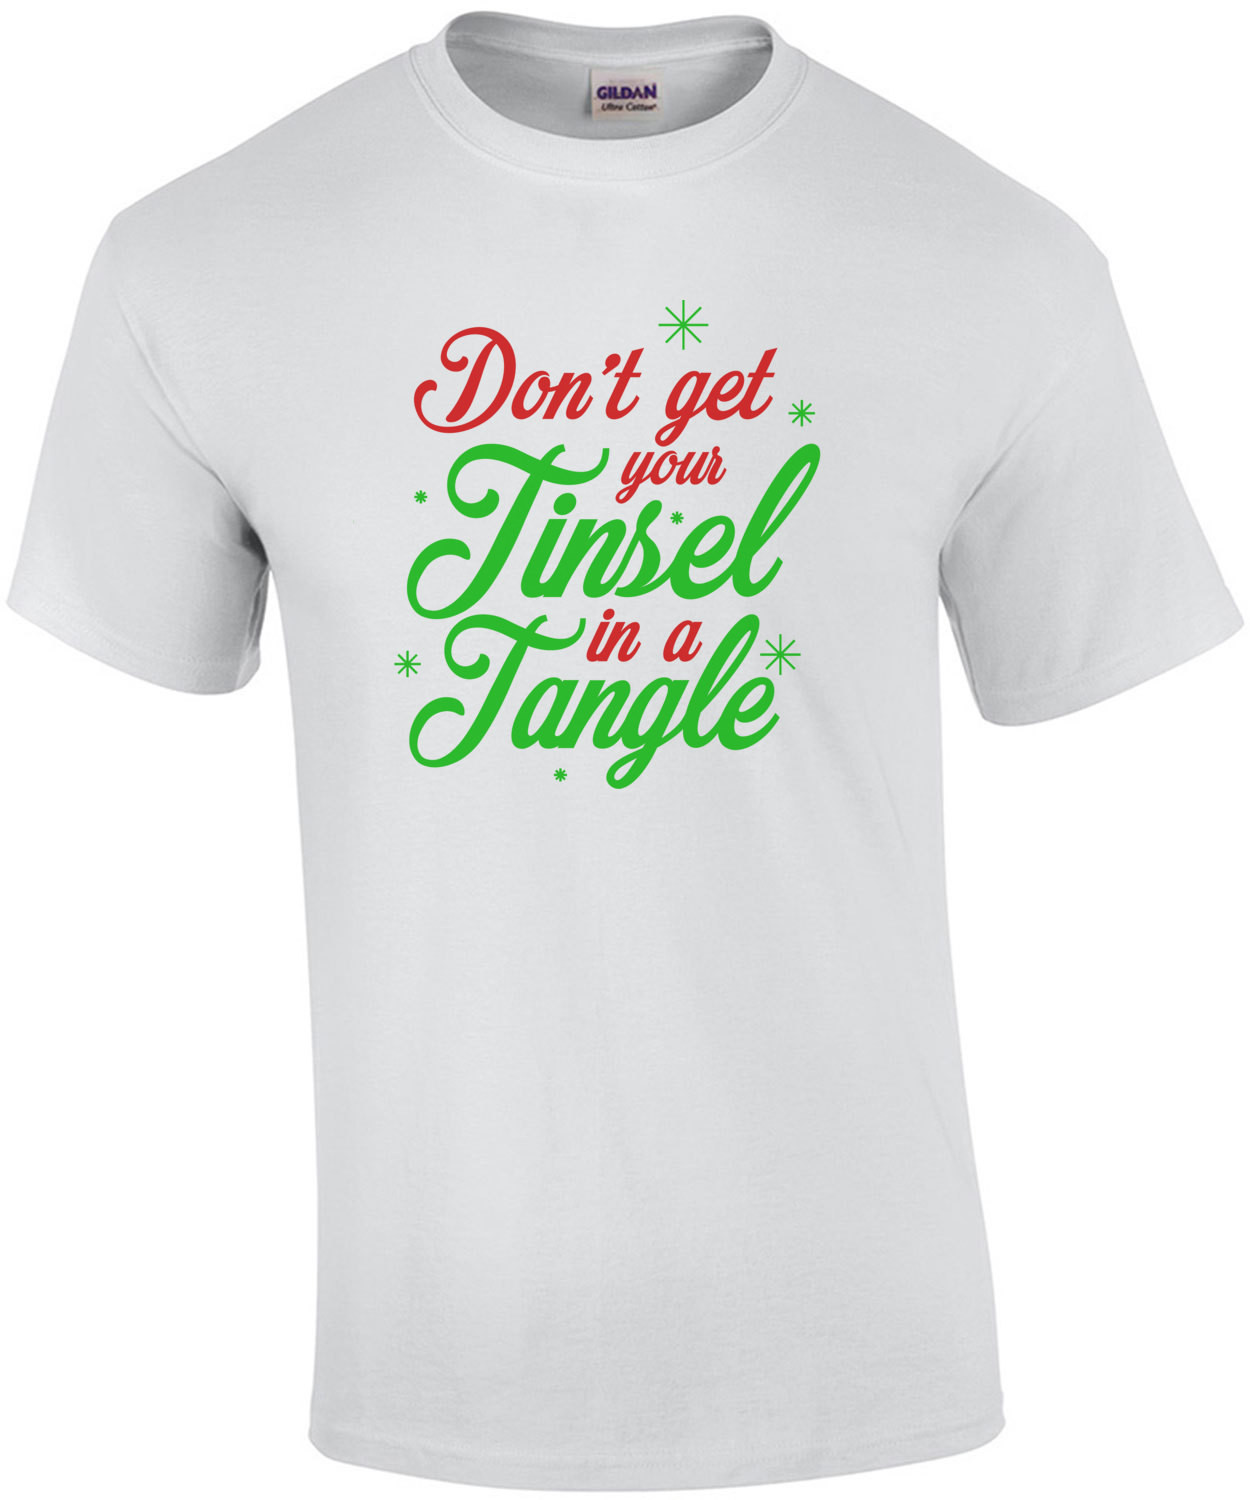 Don't get your tinsel in a tangle - Christmas T-Shirt